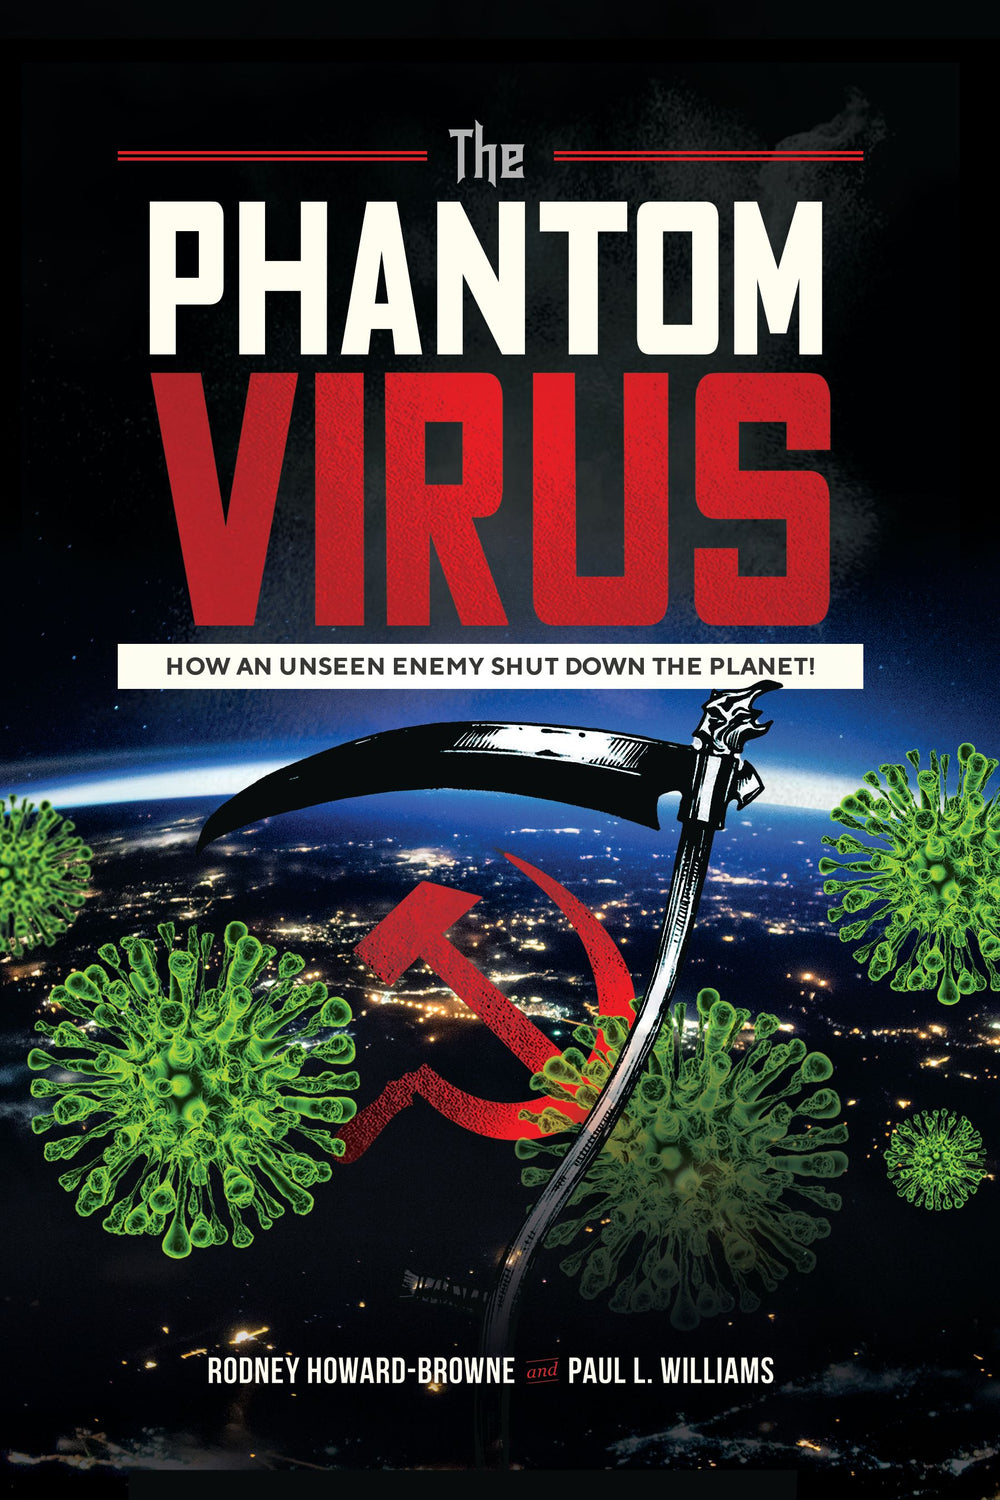 The Phantom Virus - How An Unseen Enemy Shut Down The Planet! Paperback & Ebook Version Available